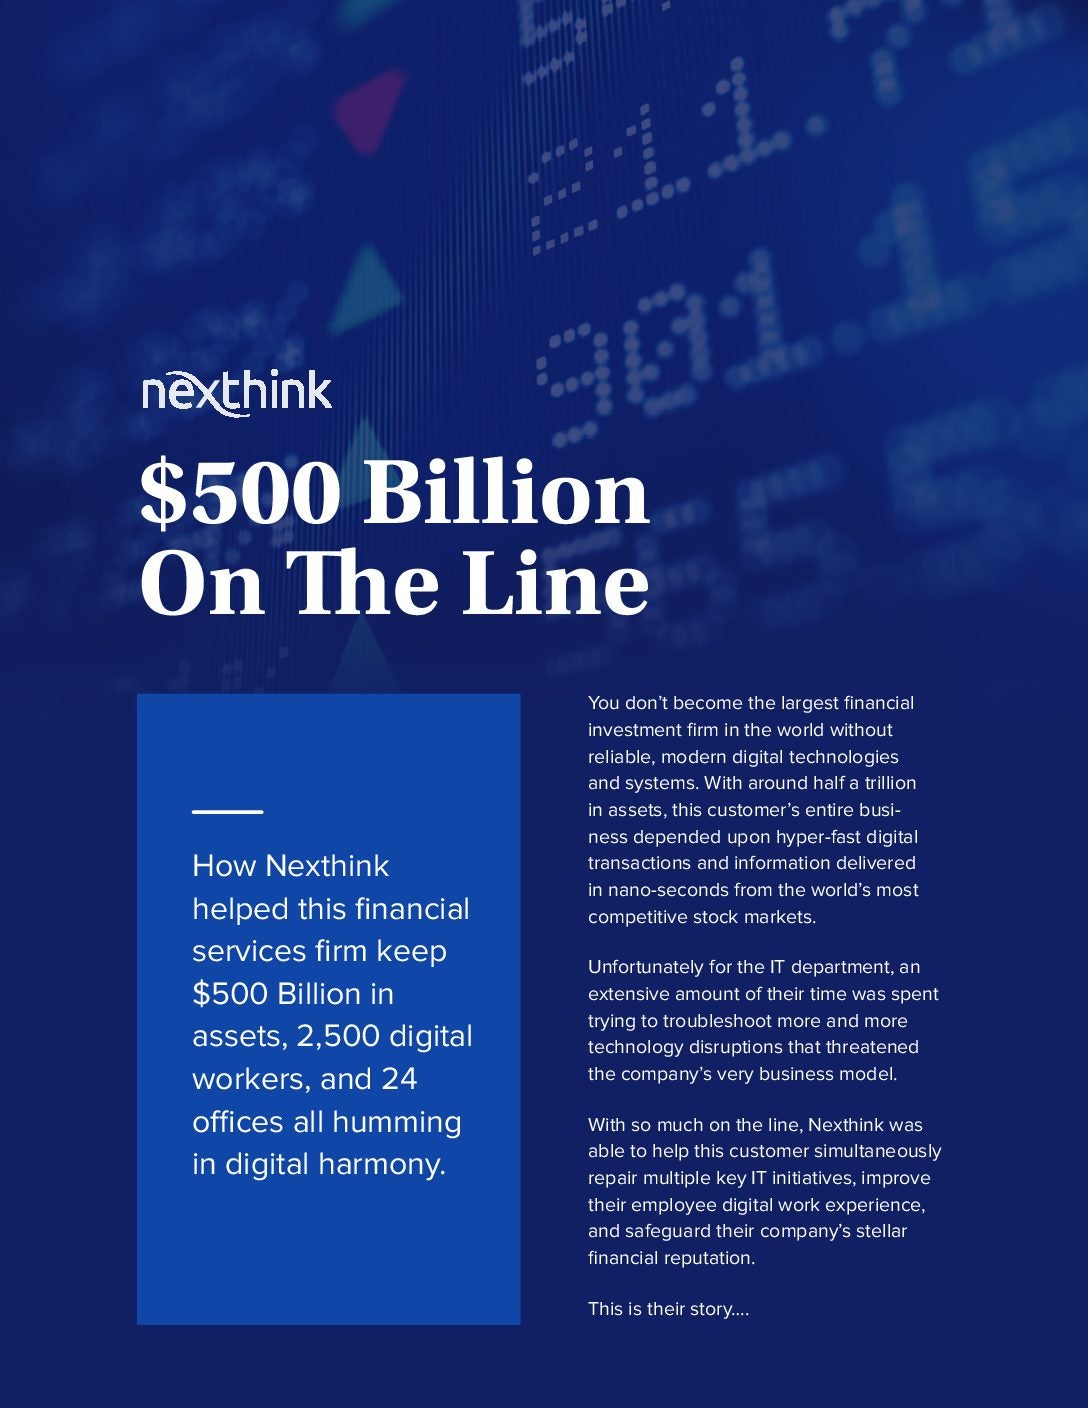 $500 Billion on the Line: How One IT Dept. Stepped Up Big